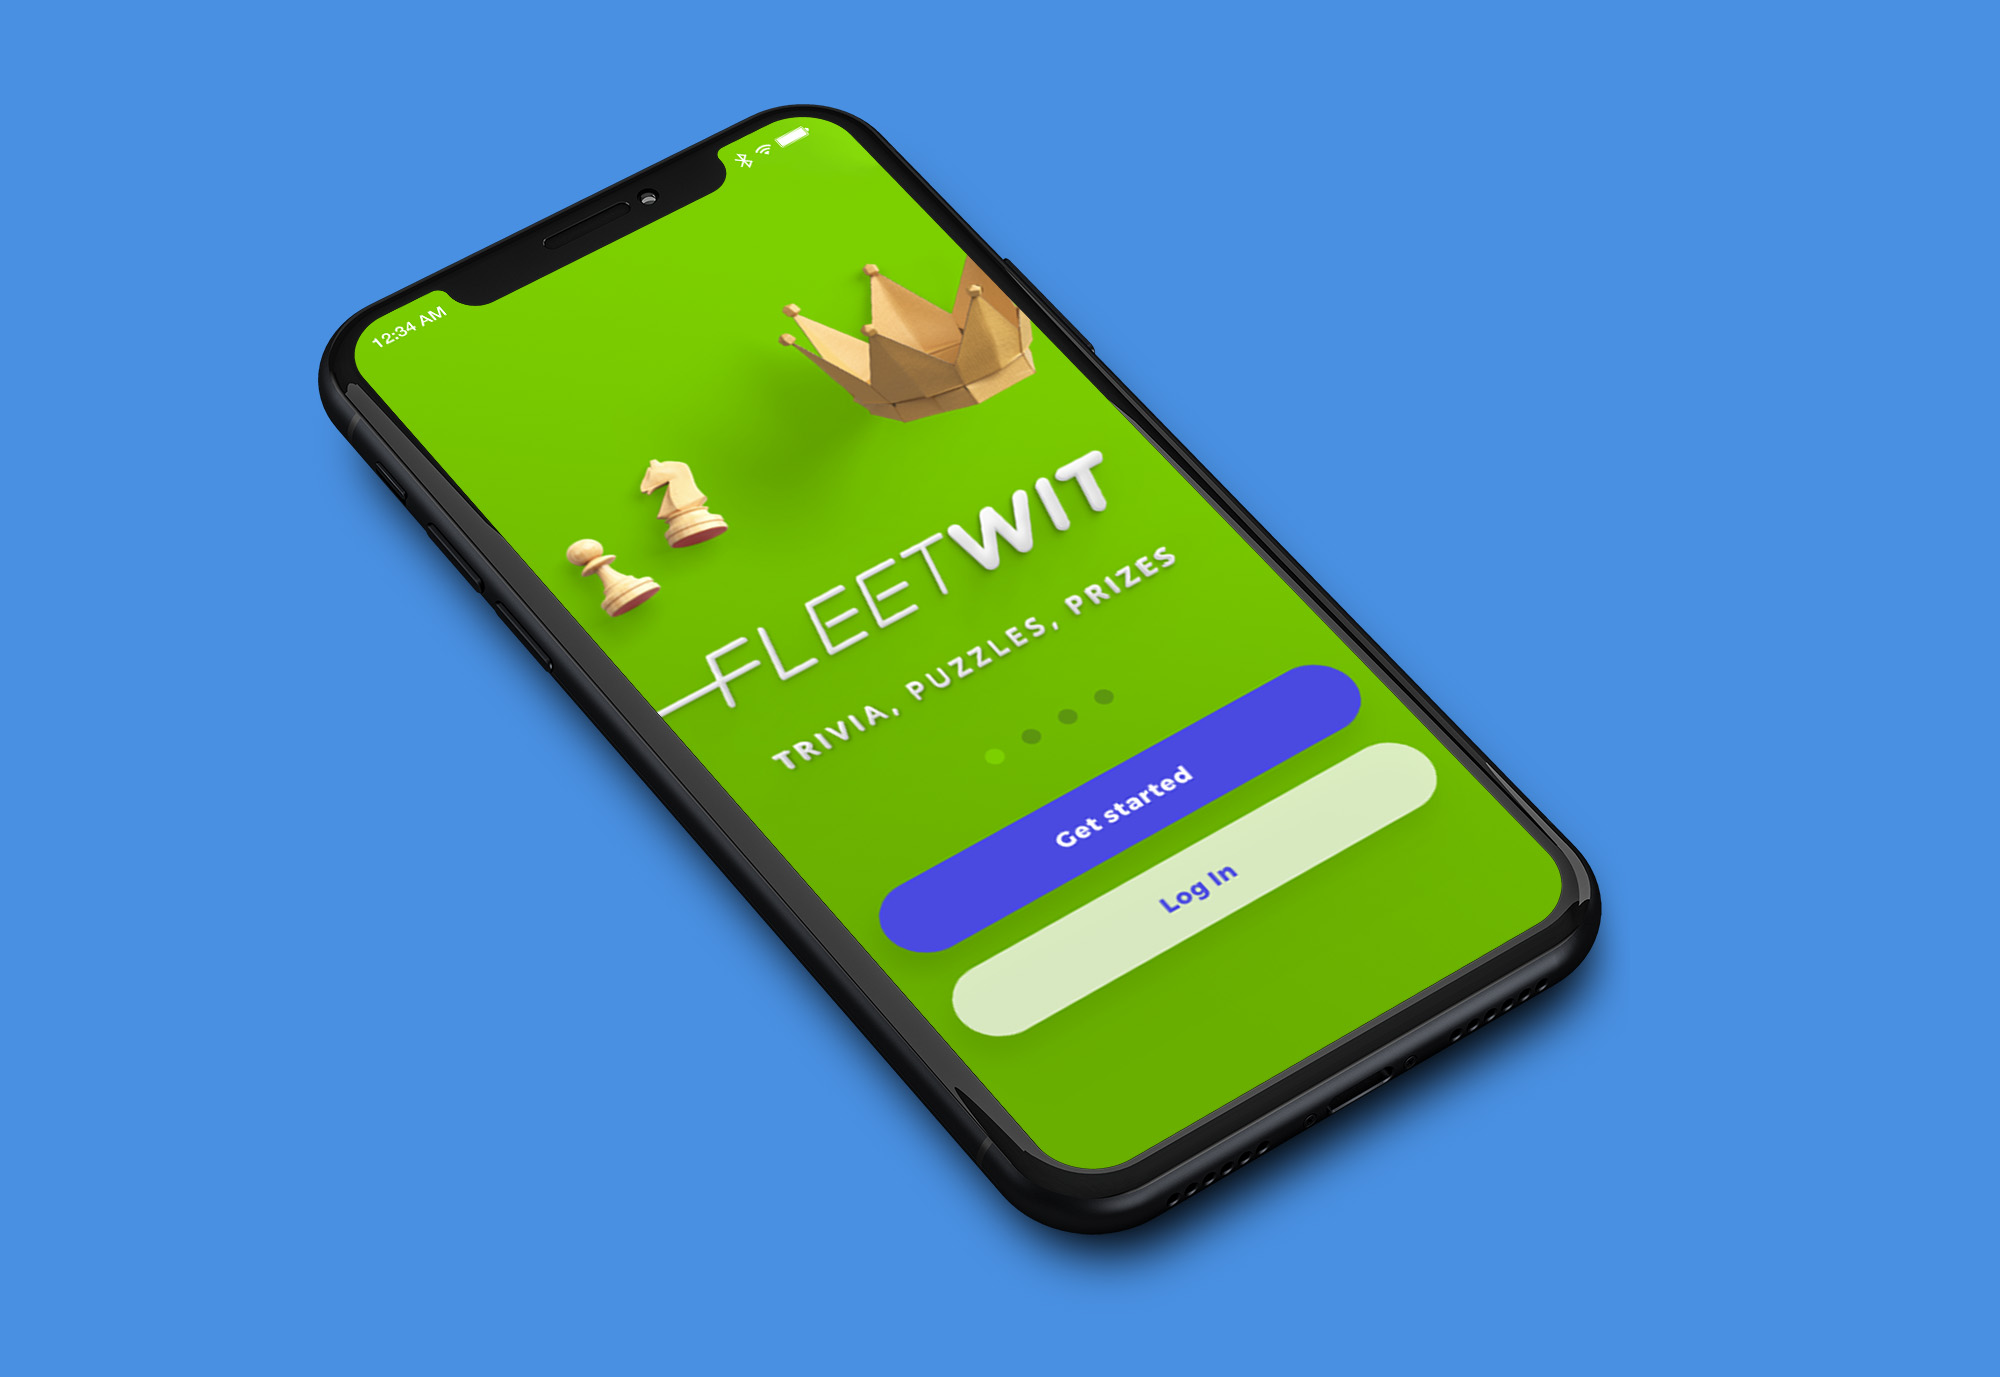 fleetwit-isometric-iphonex.jpg